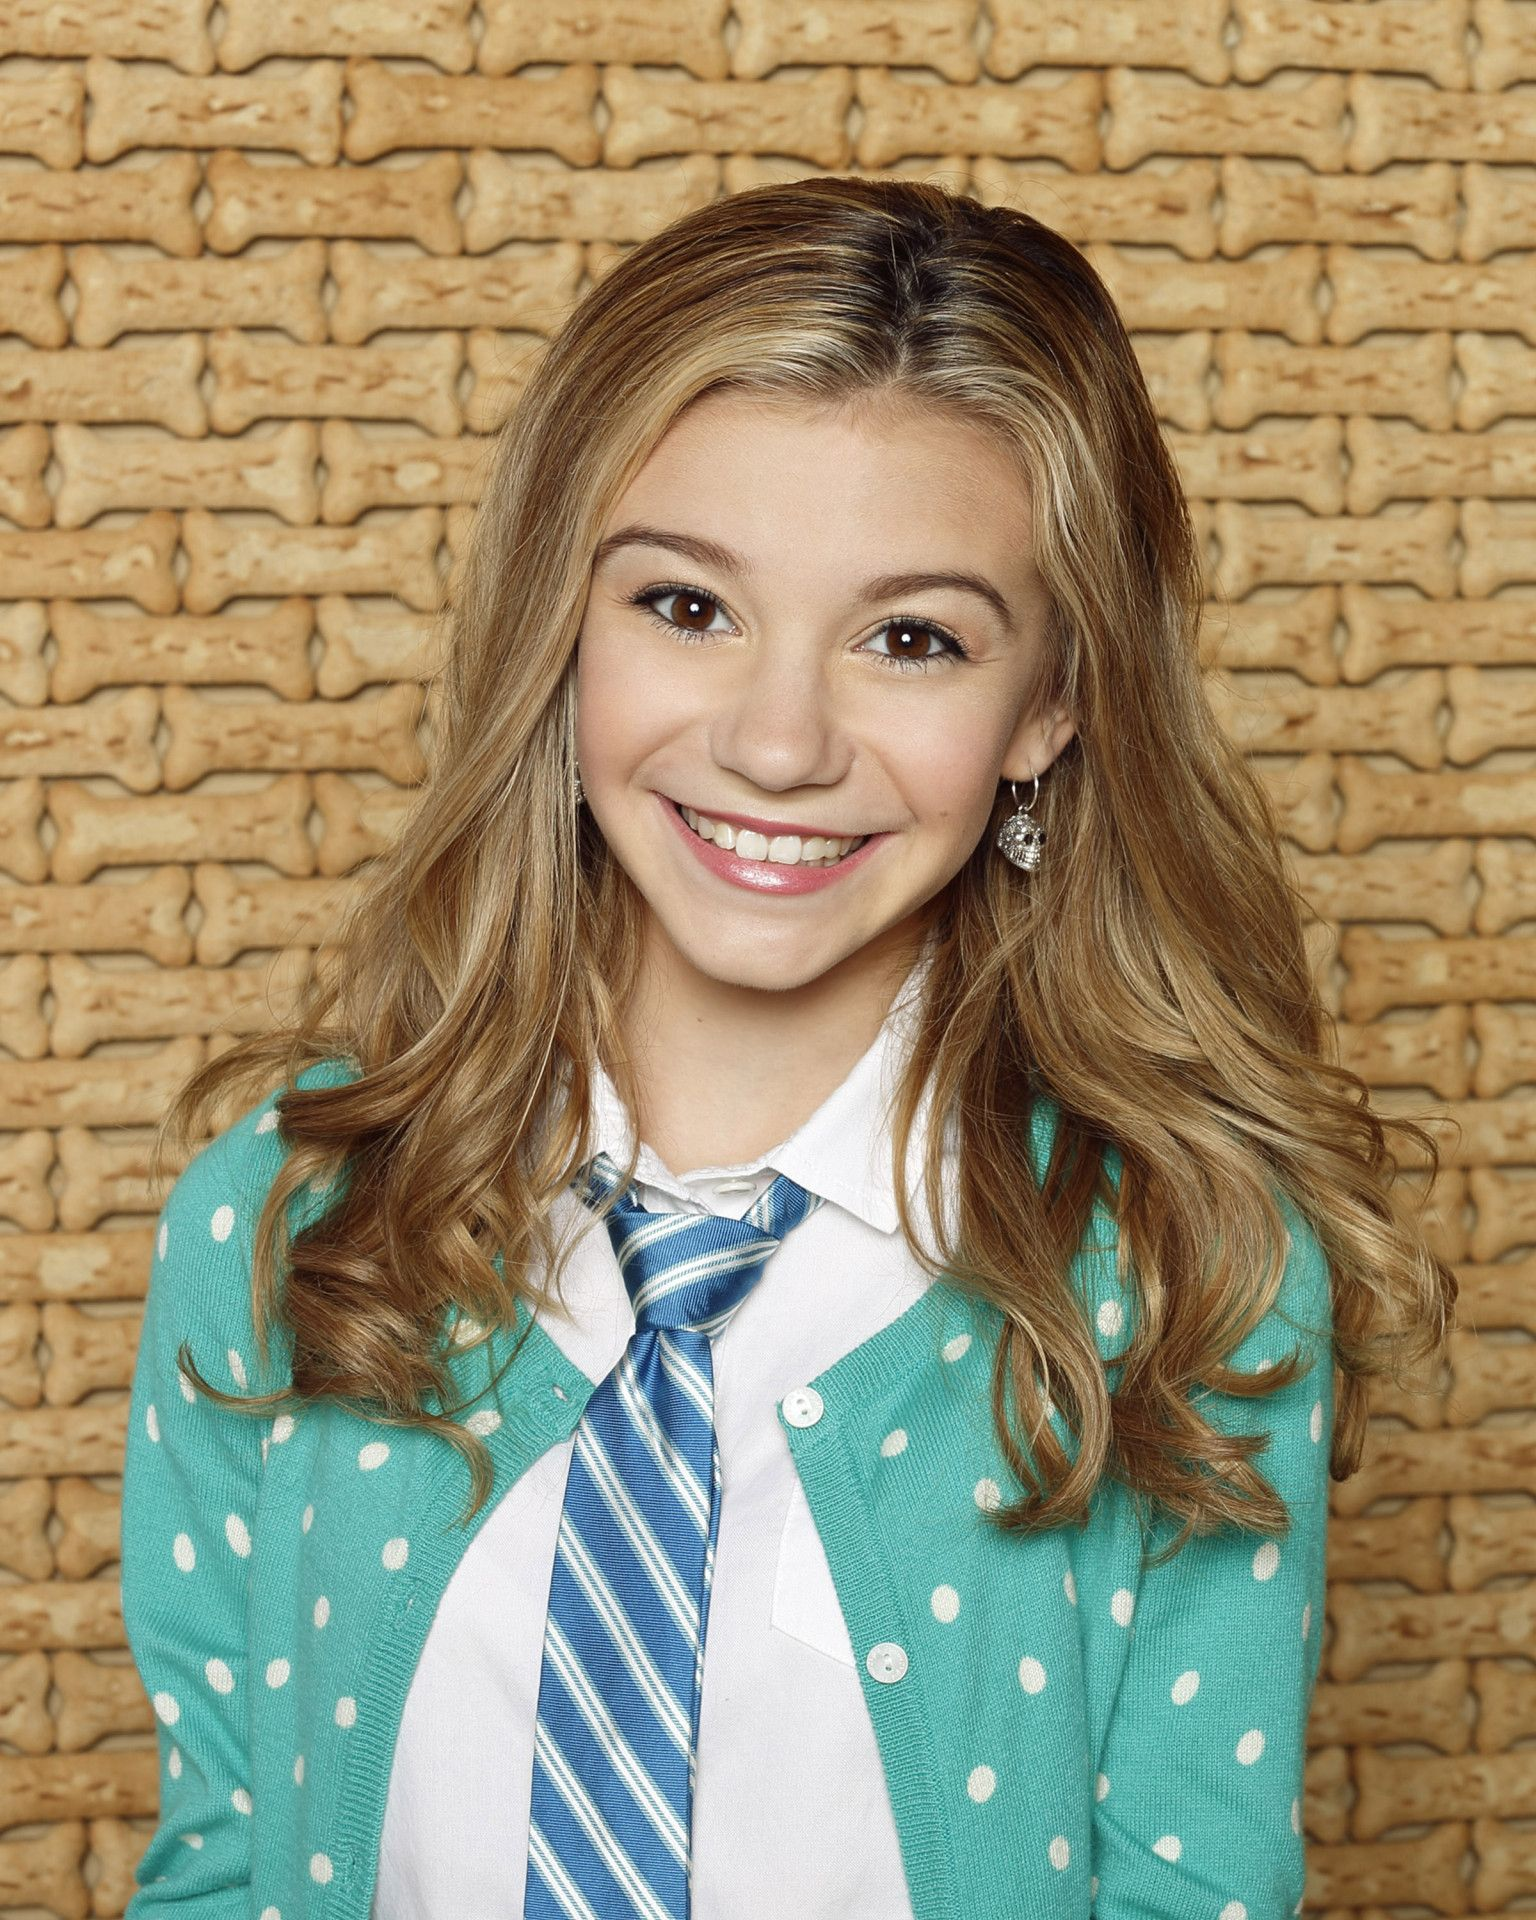 G-HANNELIUS - Fashion | Pinterest